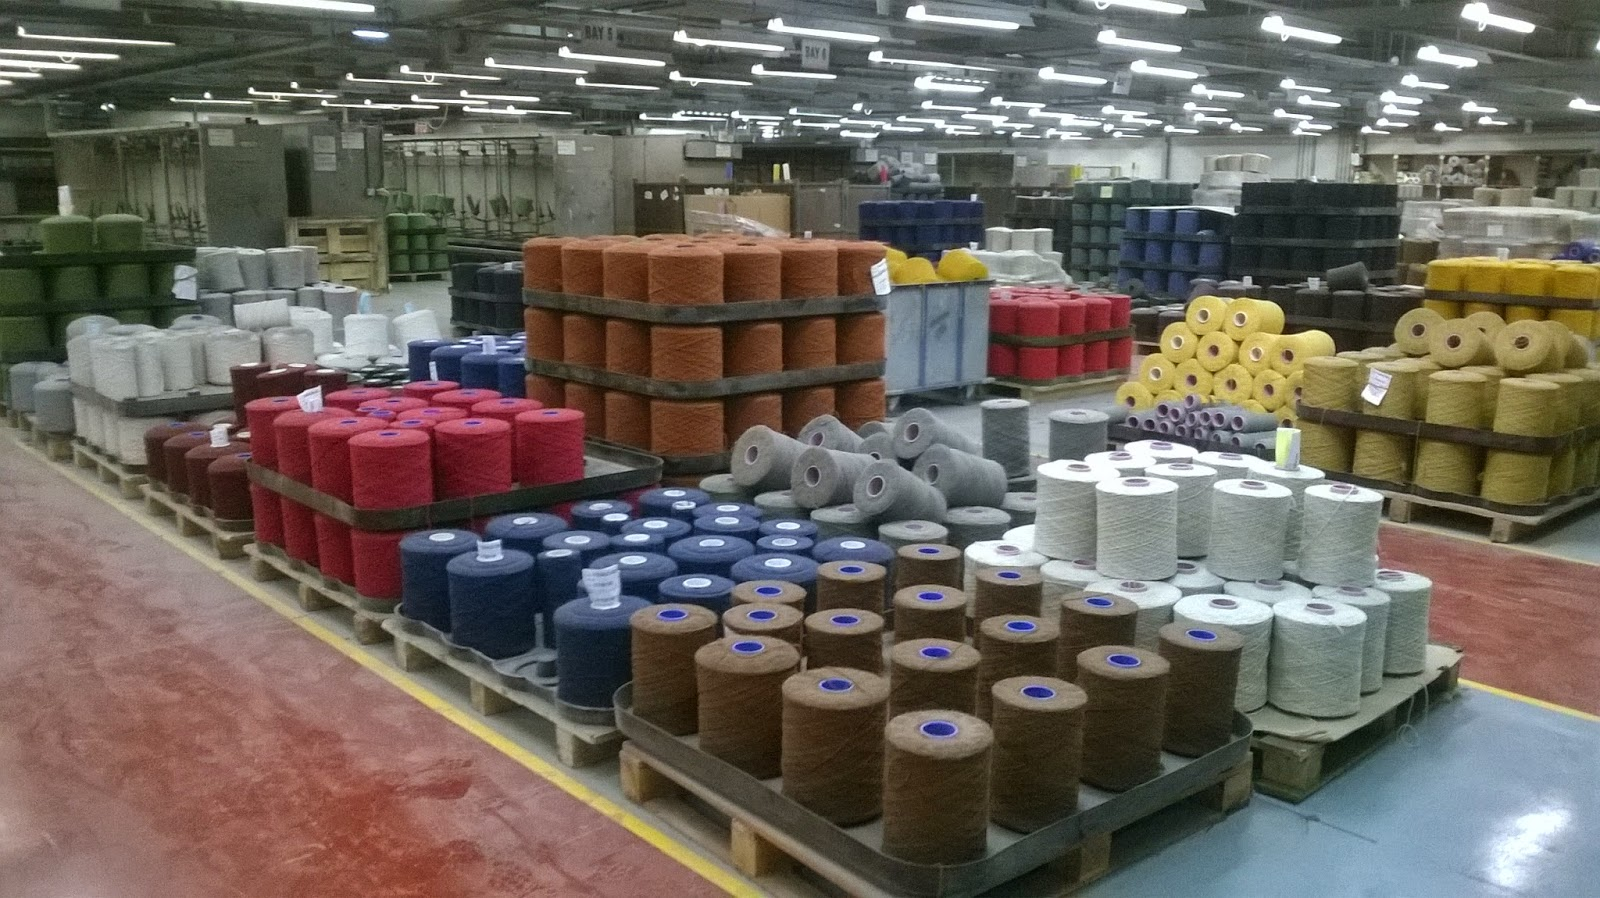 Pre dyed wool spools ready for the looms at the Brinton's factory